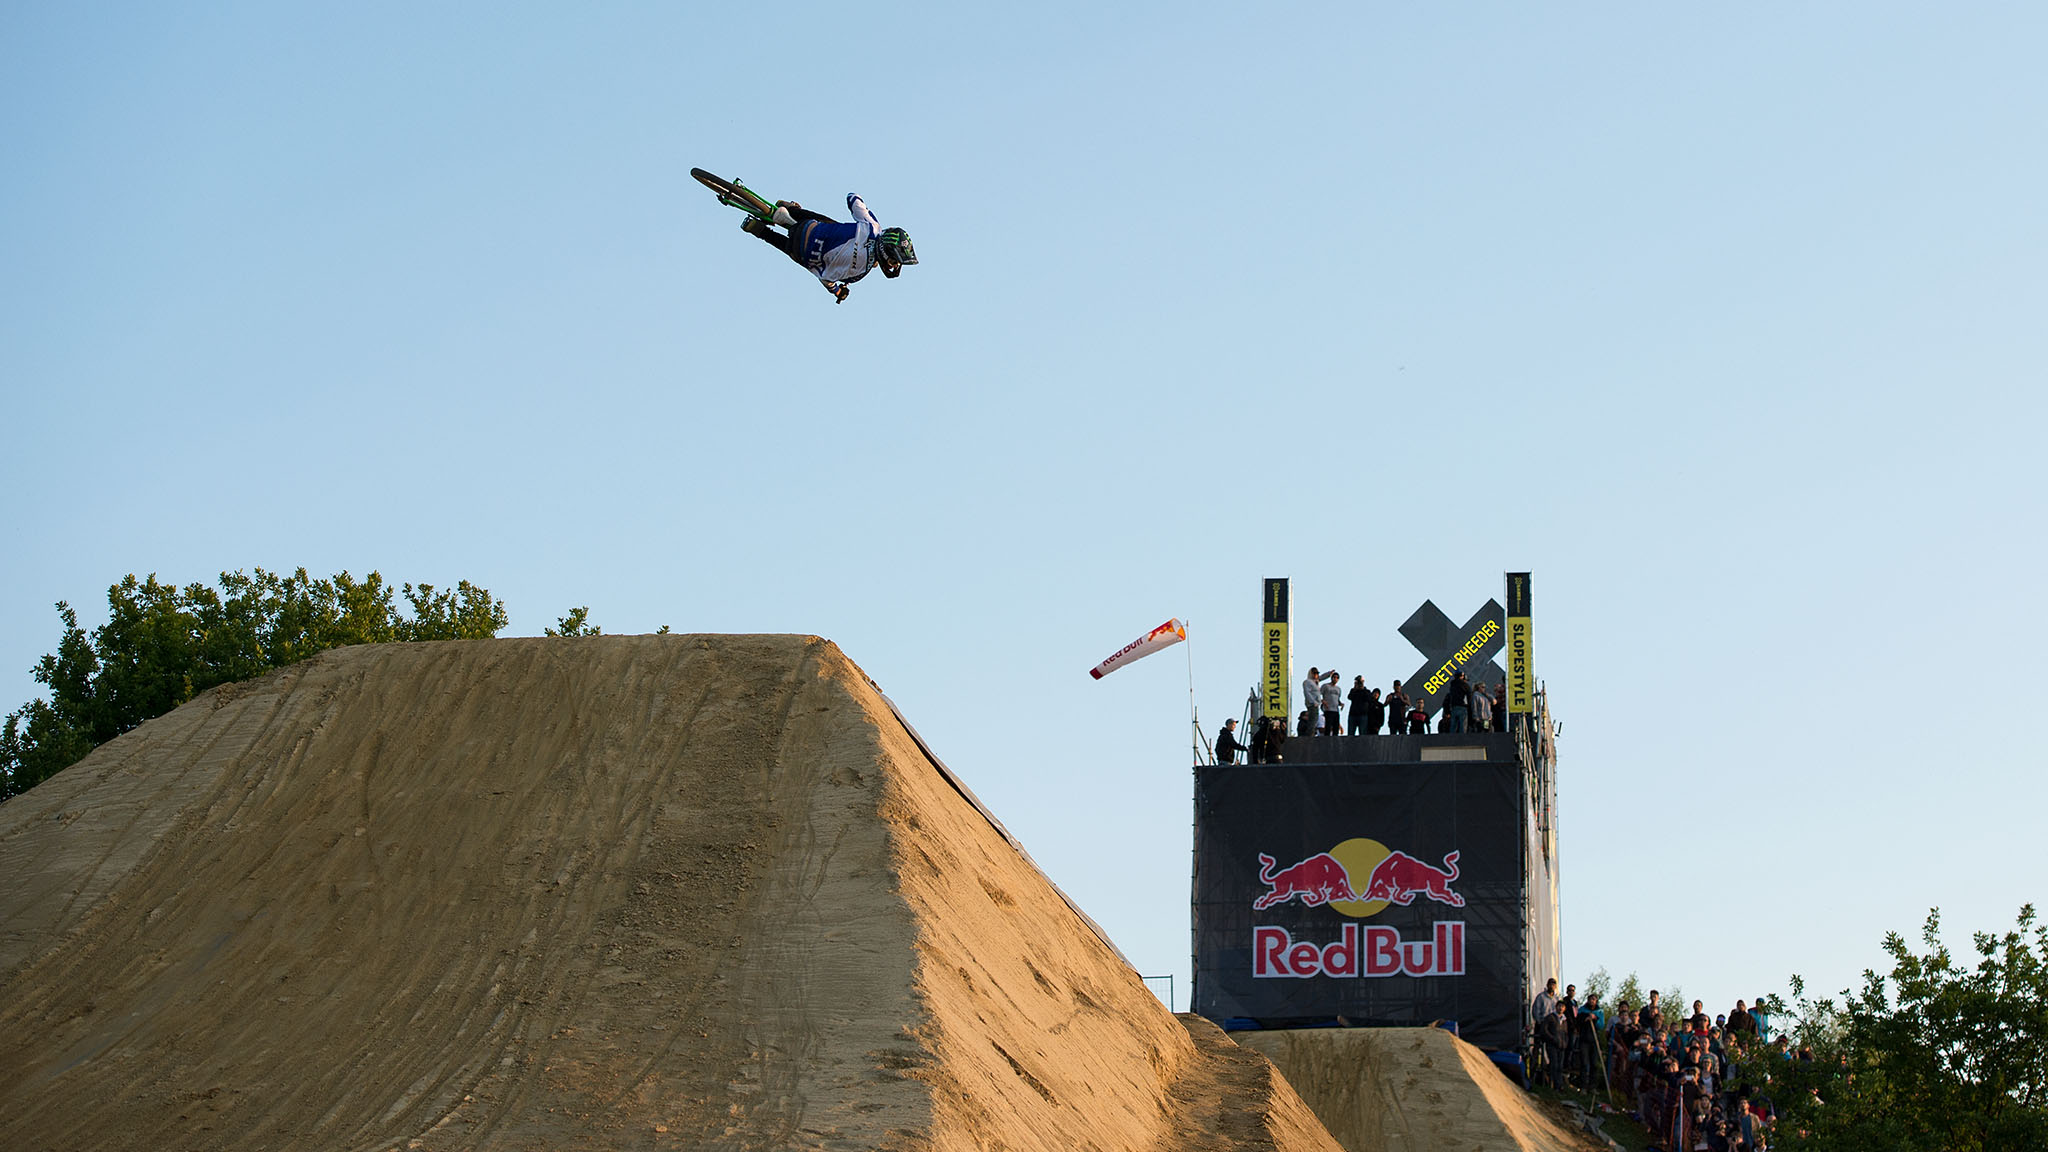 Brett Rheeder's big second run on the Slopestyle course at X Games Munich earned gold.